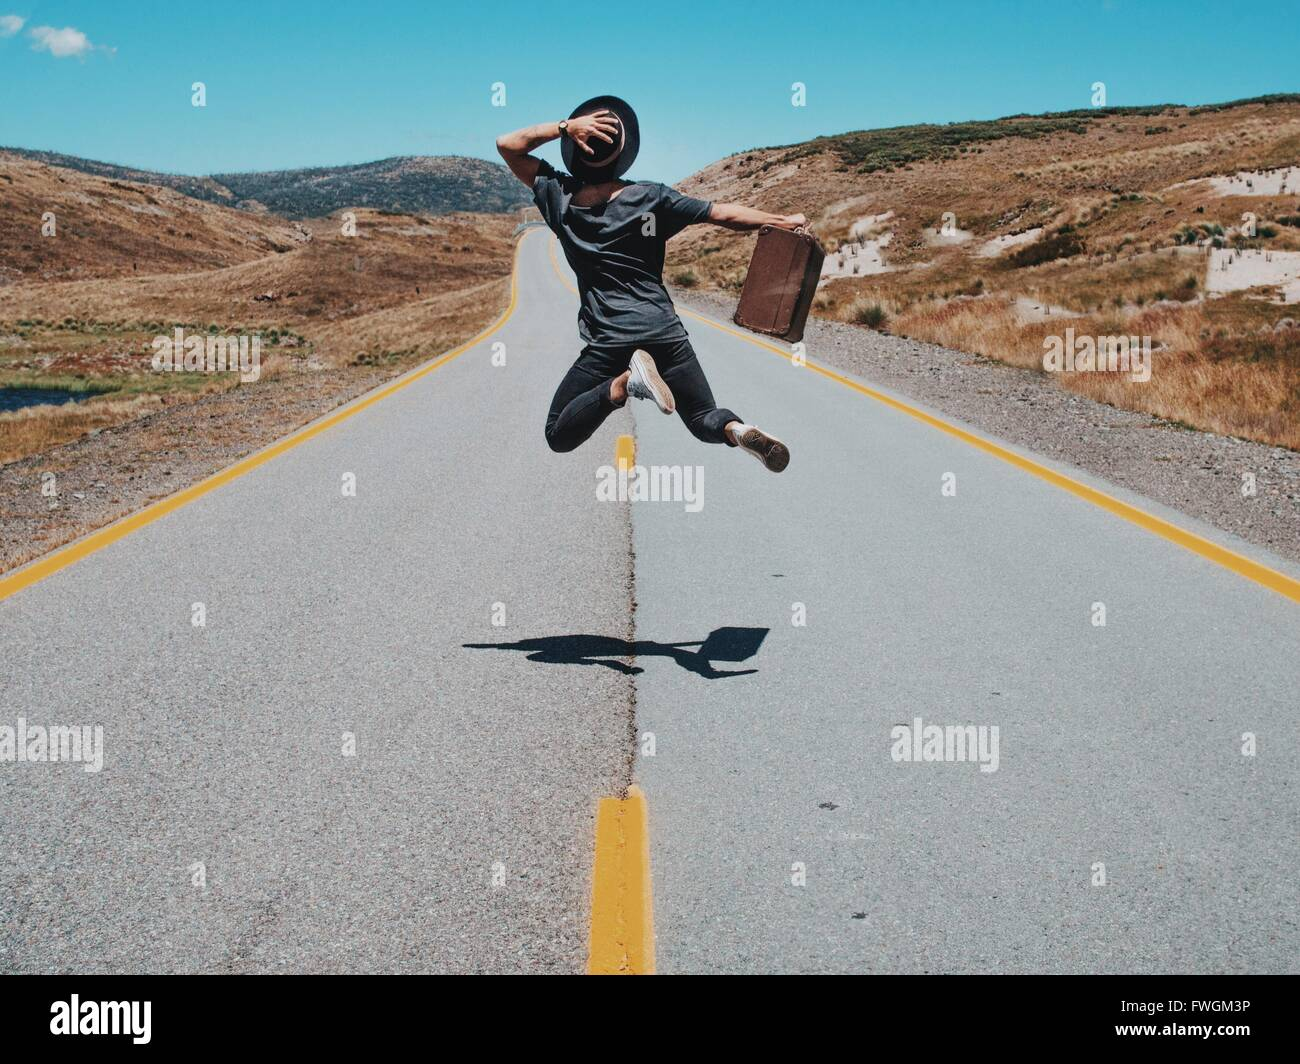 Rear View Of Man Jumping On Country Road Against Sky - Stock Image